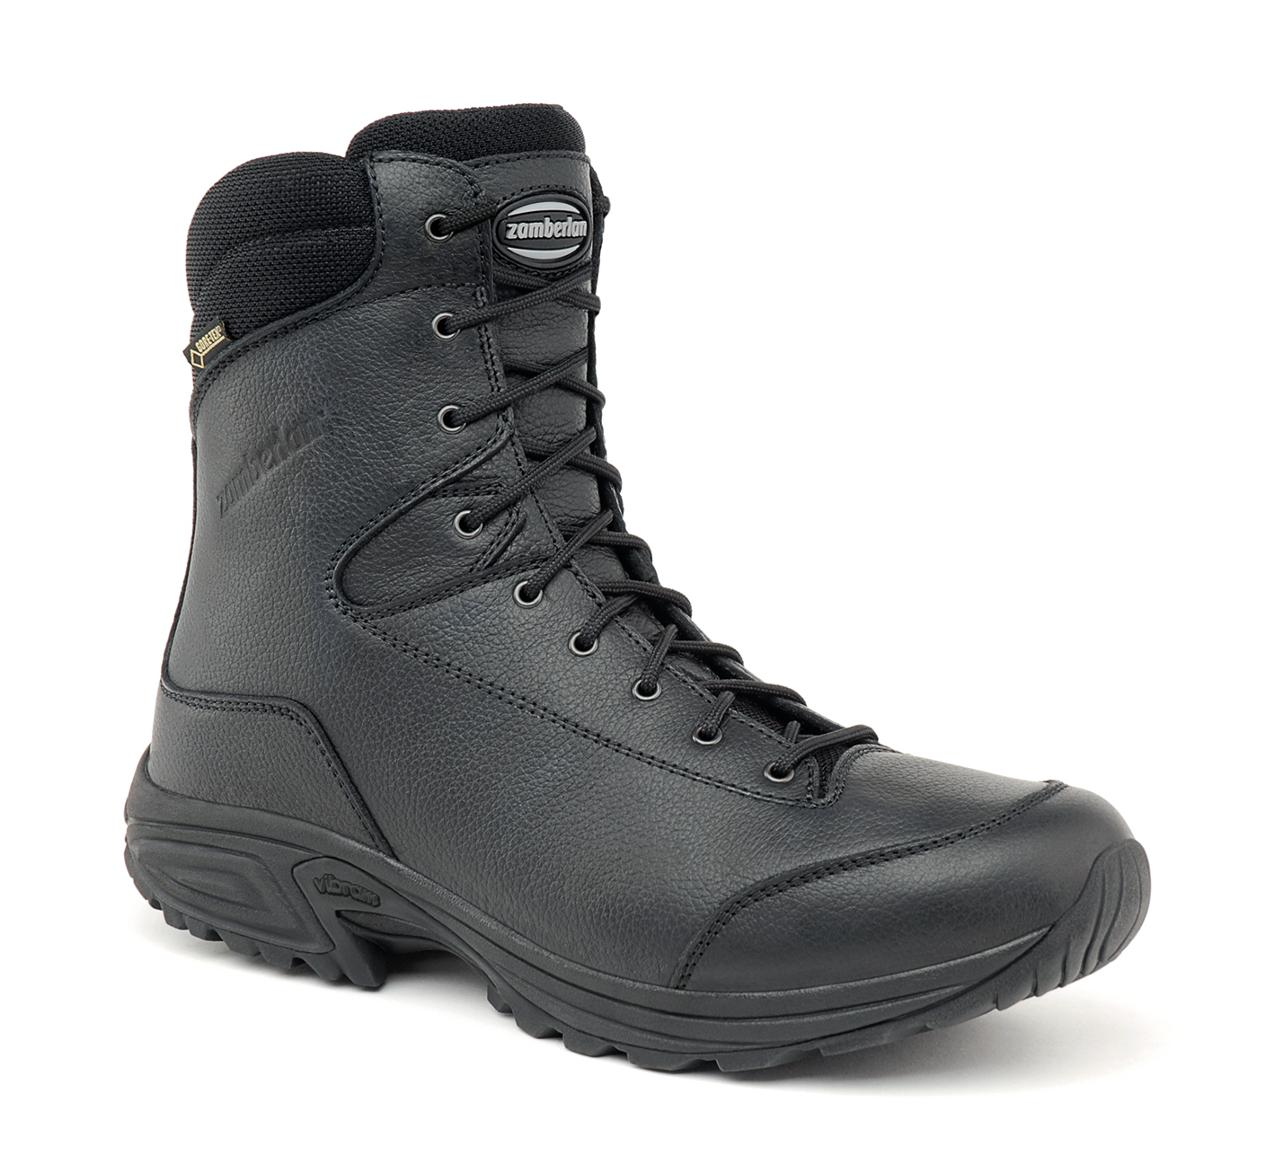 118 RANGER PLUS GTX®   -   Hunting  Boots   -   Black